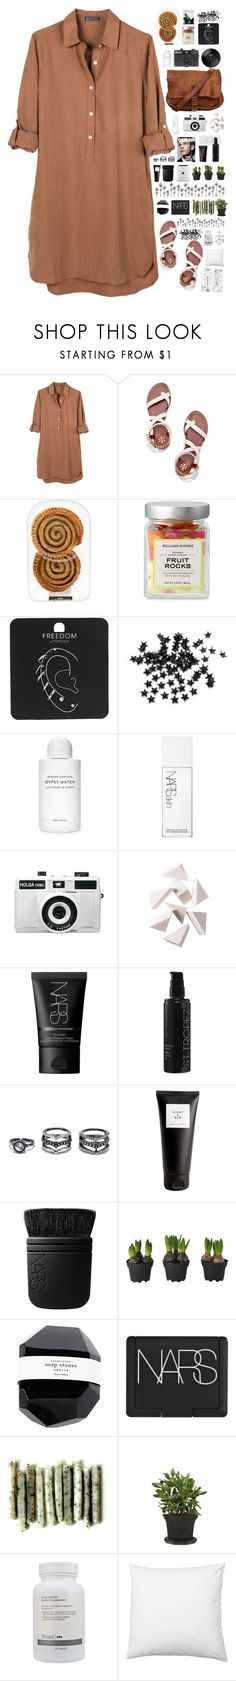 """That makes me..."" by spottdrossel ❤ liked on Polyvore featuring United by Blue, Tory Burch, Topshop, INC International Concepts, Byredo, Holga, NARS Cosmetics, Bobbi Brown Cosmetics, St. Tropez and LULUS"